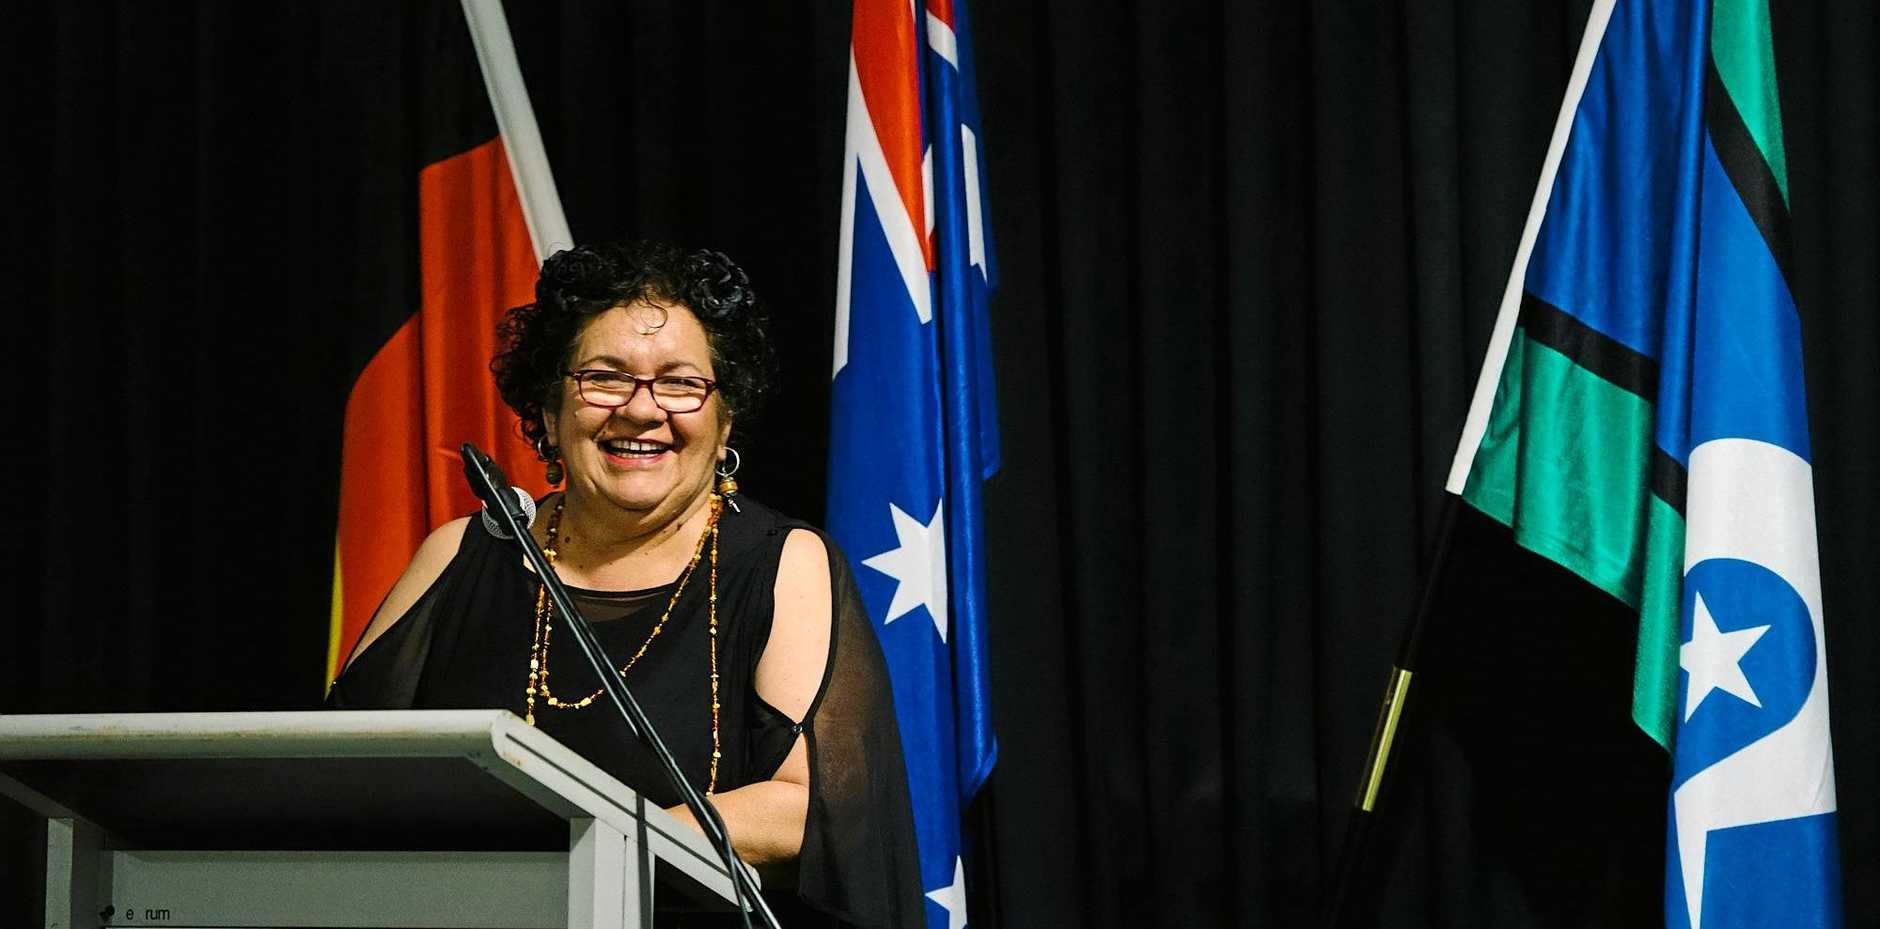 MAKING A CHANGE: Professor Tracey Bunda, head of USQ's College for Indigenous Studies, Education and Research, speaks at the inaugural NAIDOC Ball.